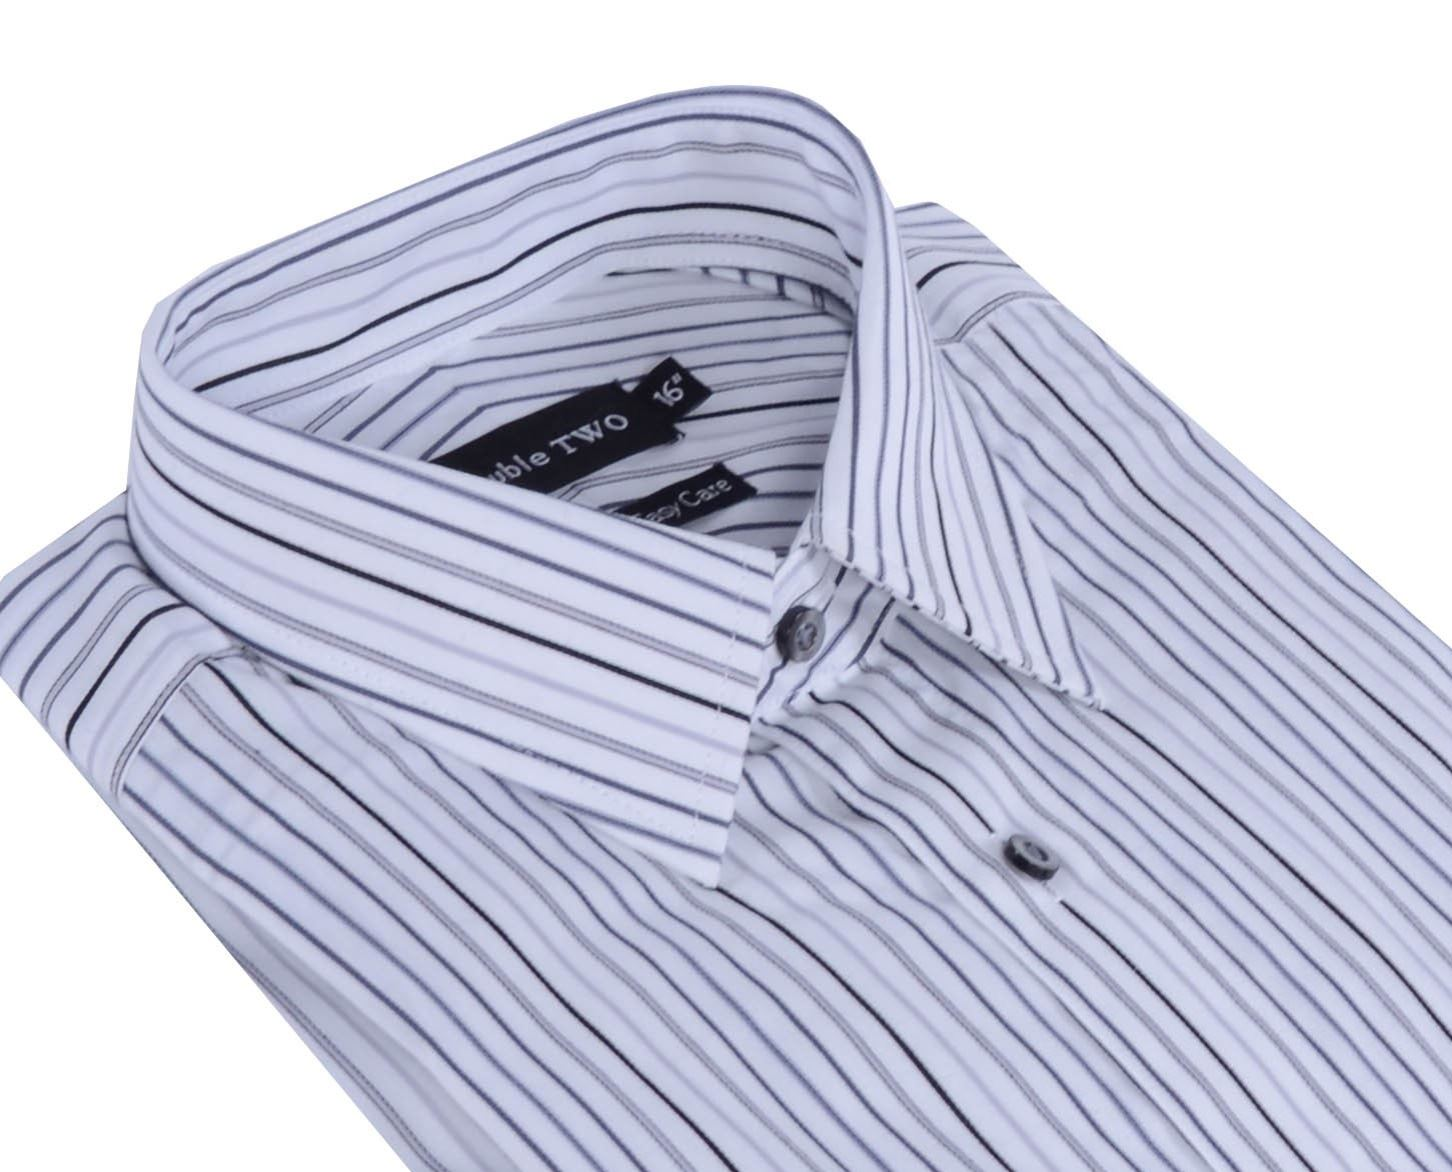 """DOUBLE TWO COTTON EASY CARE BOLD STRIPE FORMAL SHIRTS,COLLAR 18-23/"""",2 OPTIONS"""